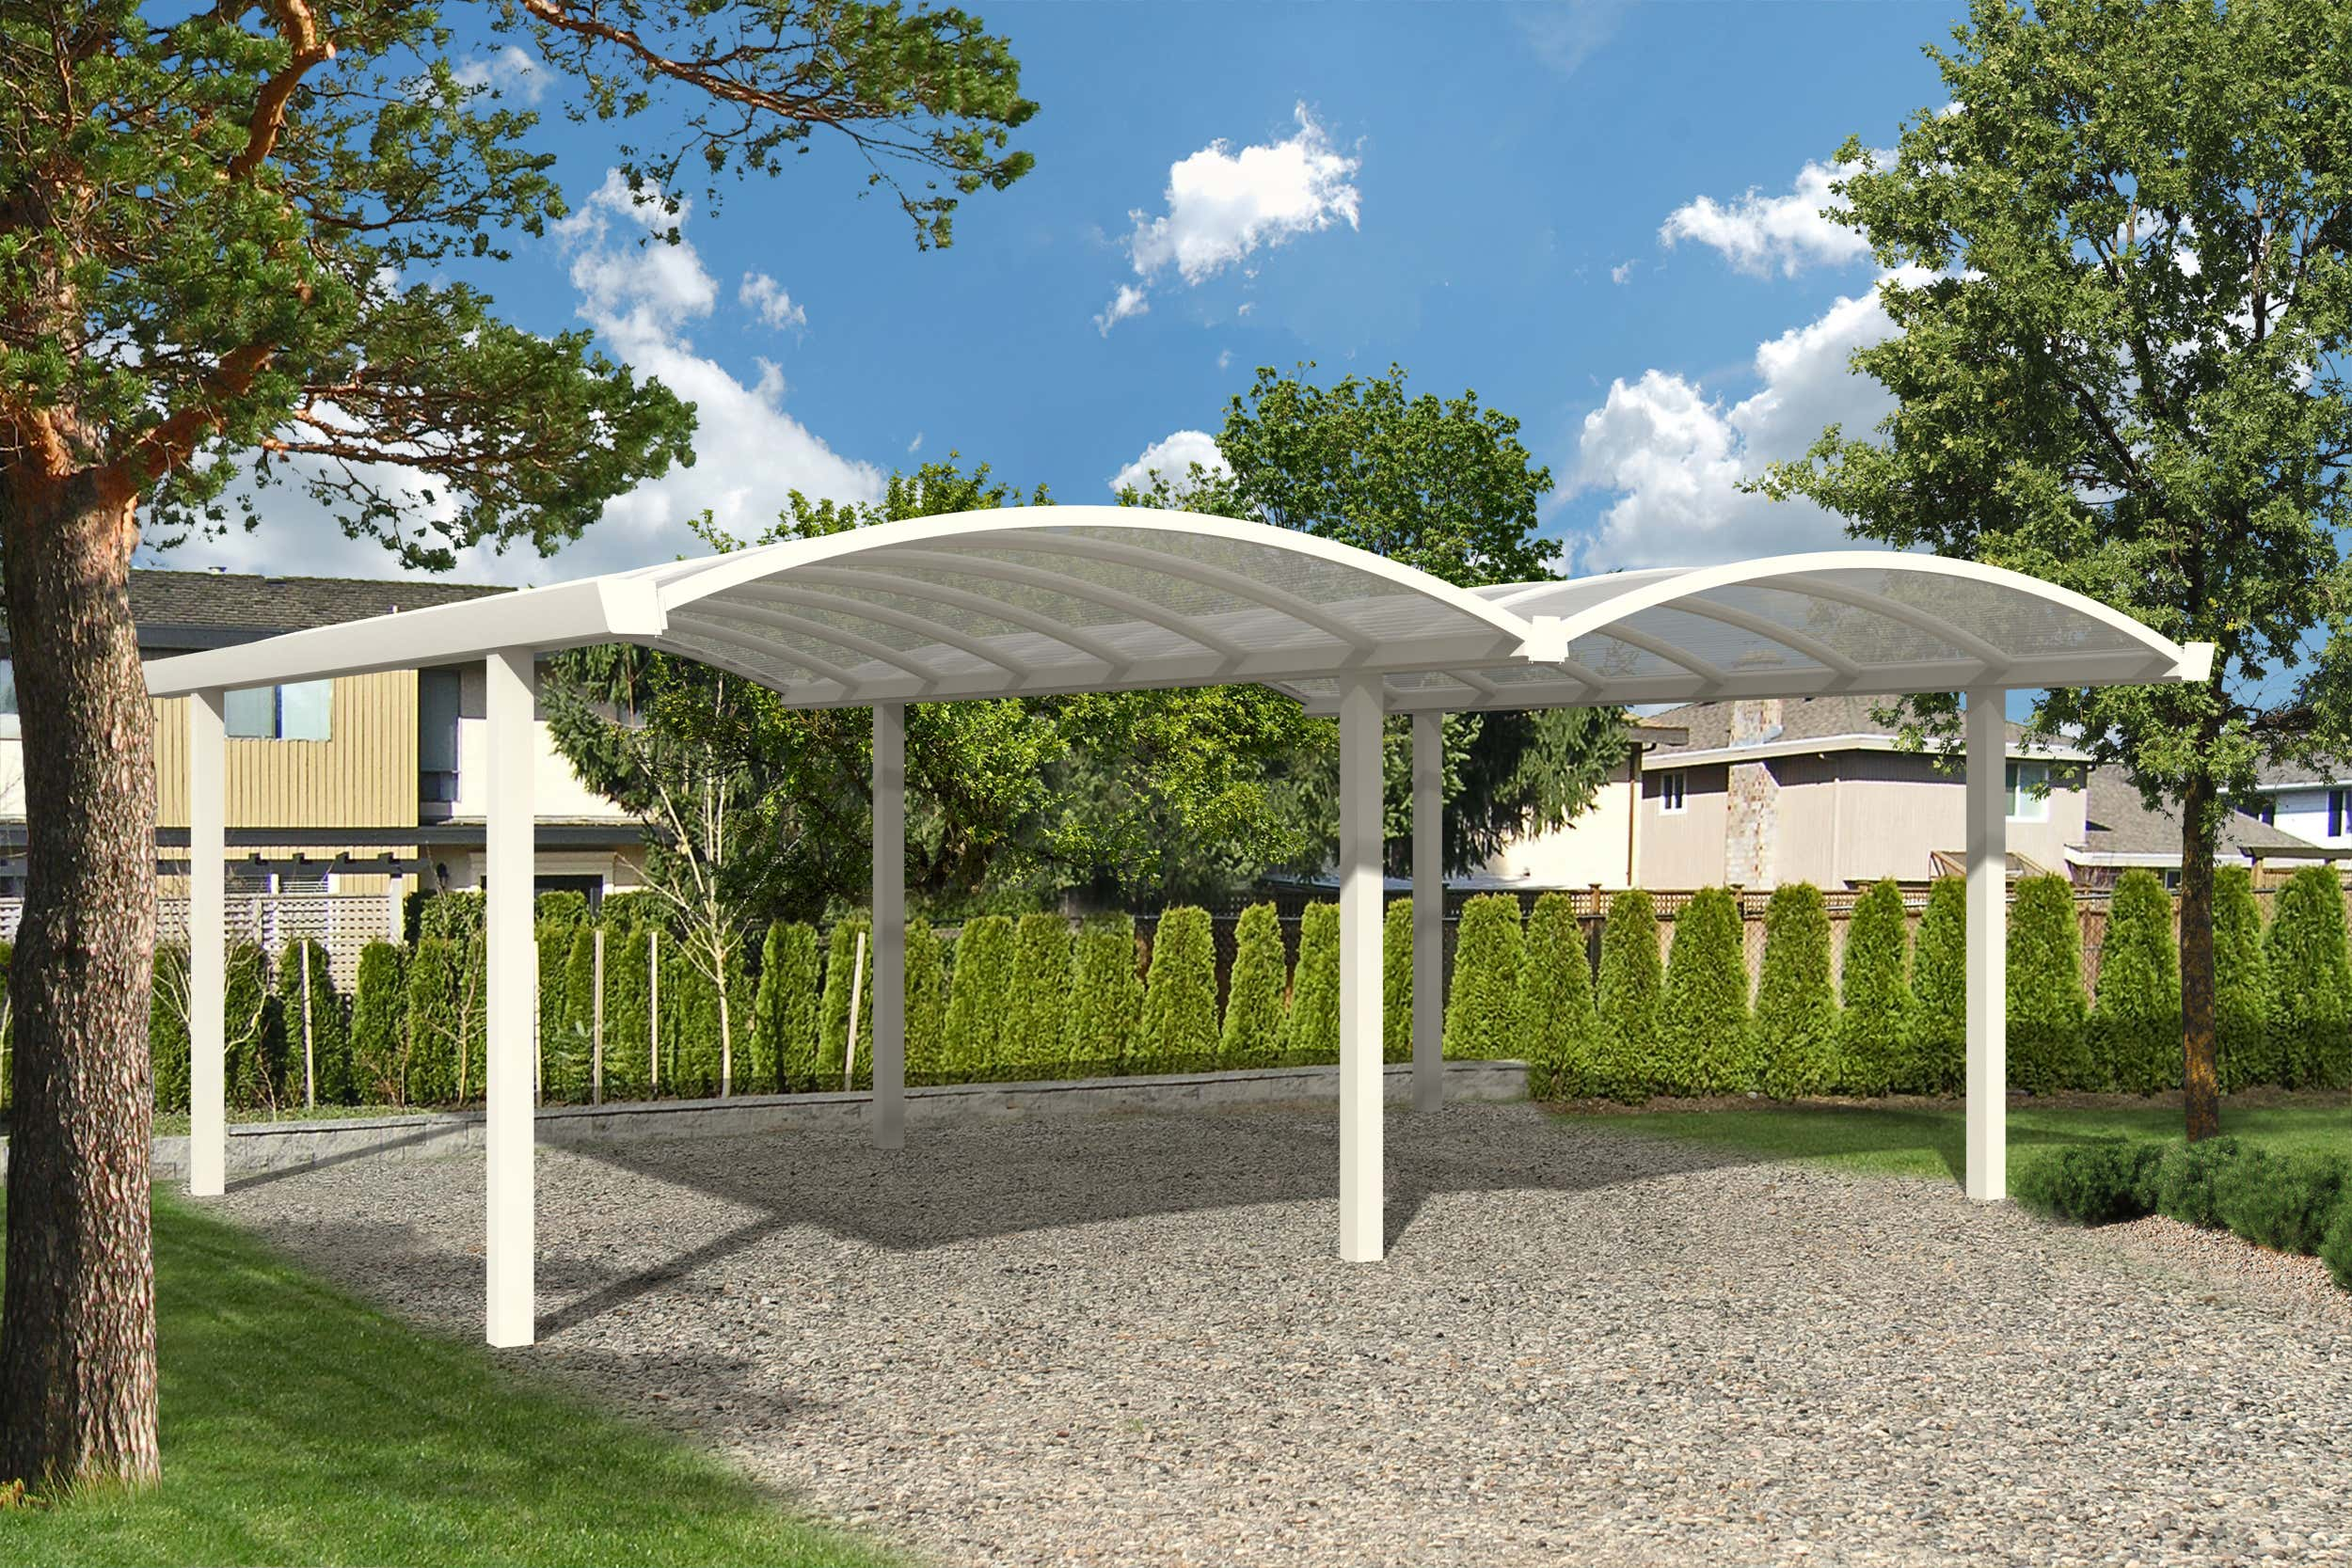 doppel bogen carport 600 x 500 cm a z gartenhaus gmbh. Black Bedroom Furniture Sets. Home Design Ideas